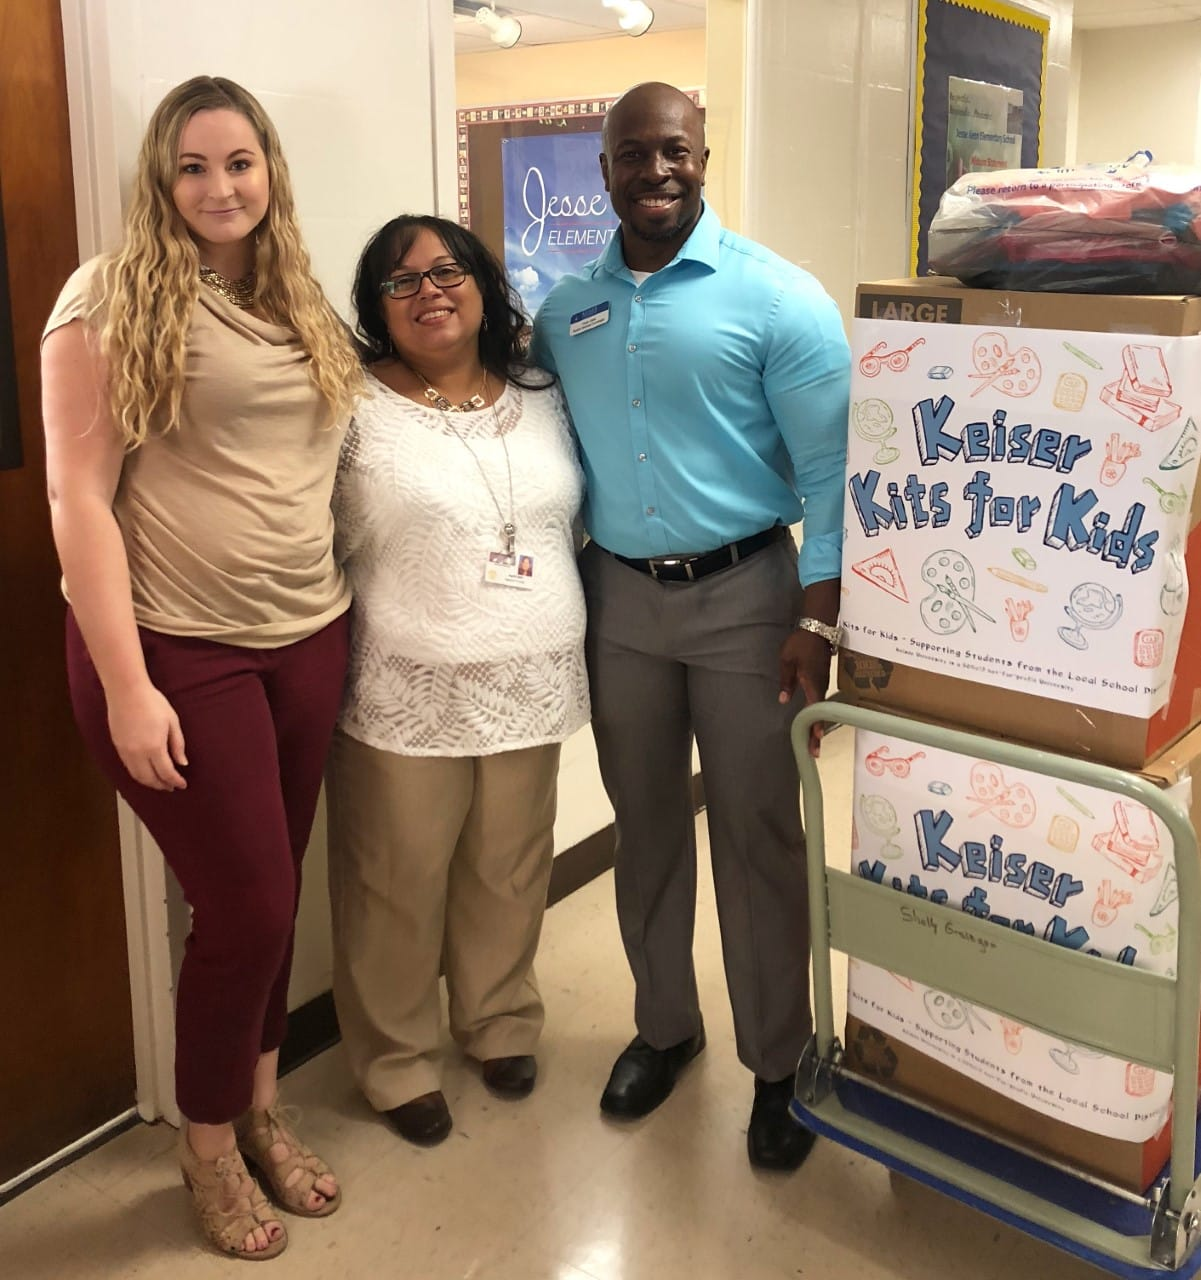 Keiser Kits for Kids School Supply Donations Benefit Lakeland Elementary School